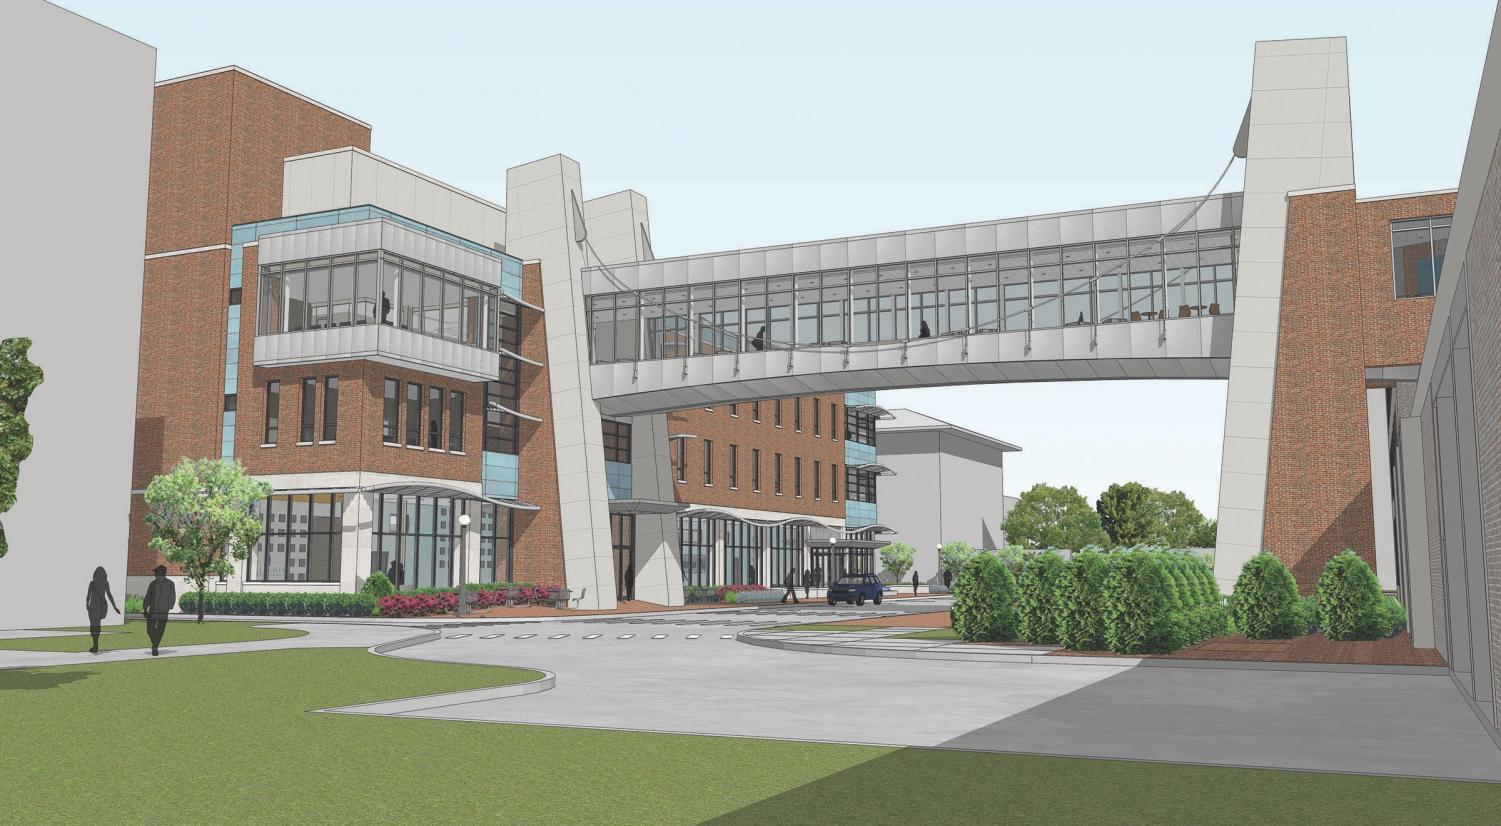 Phase II of the Civil and Environmental Modernization Plan features a new building addition and a smart bridge at the Department of Civil and Environmental Engineering, connecting the Hydrosystems and Newmark Laboratories. Construction is expected to be finished by summer 2020.